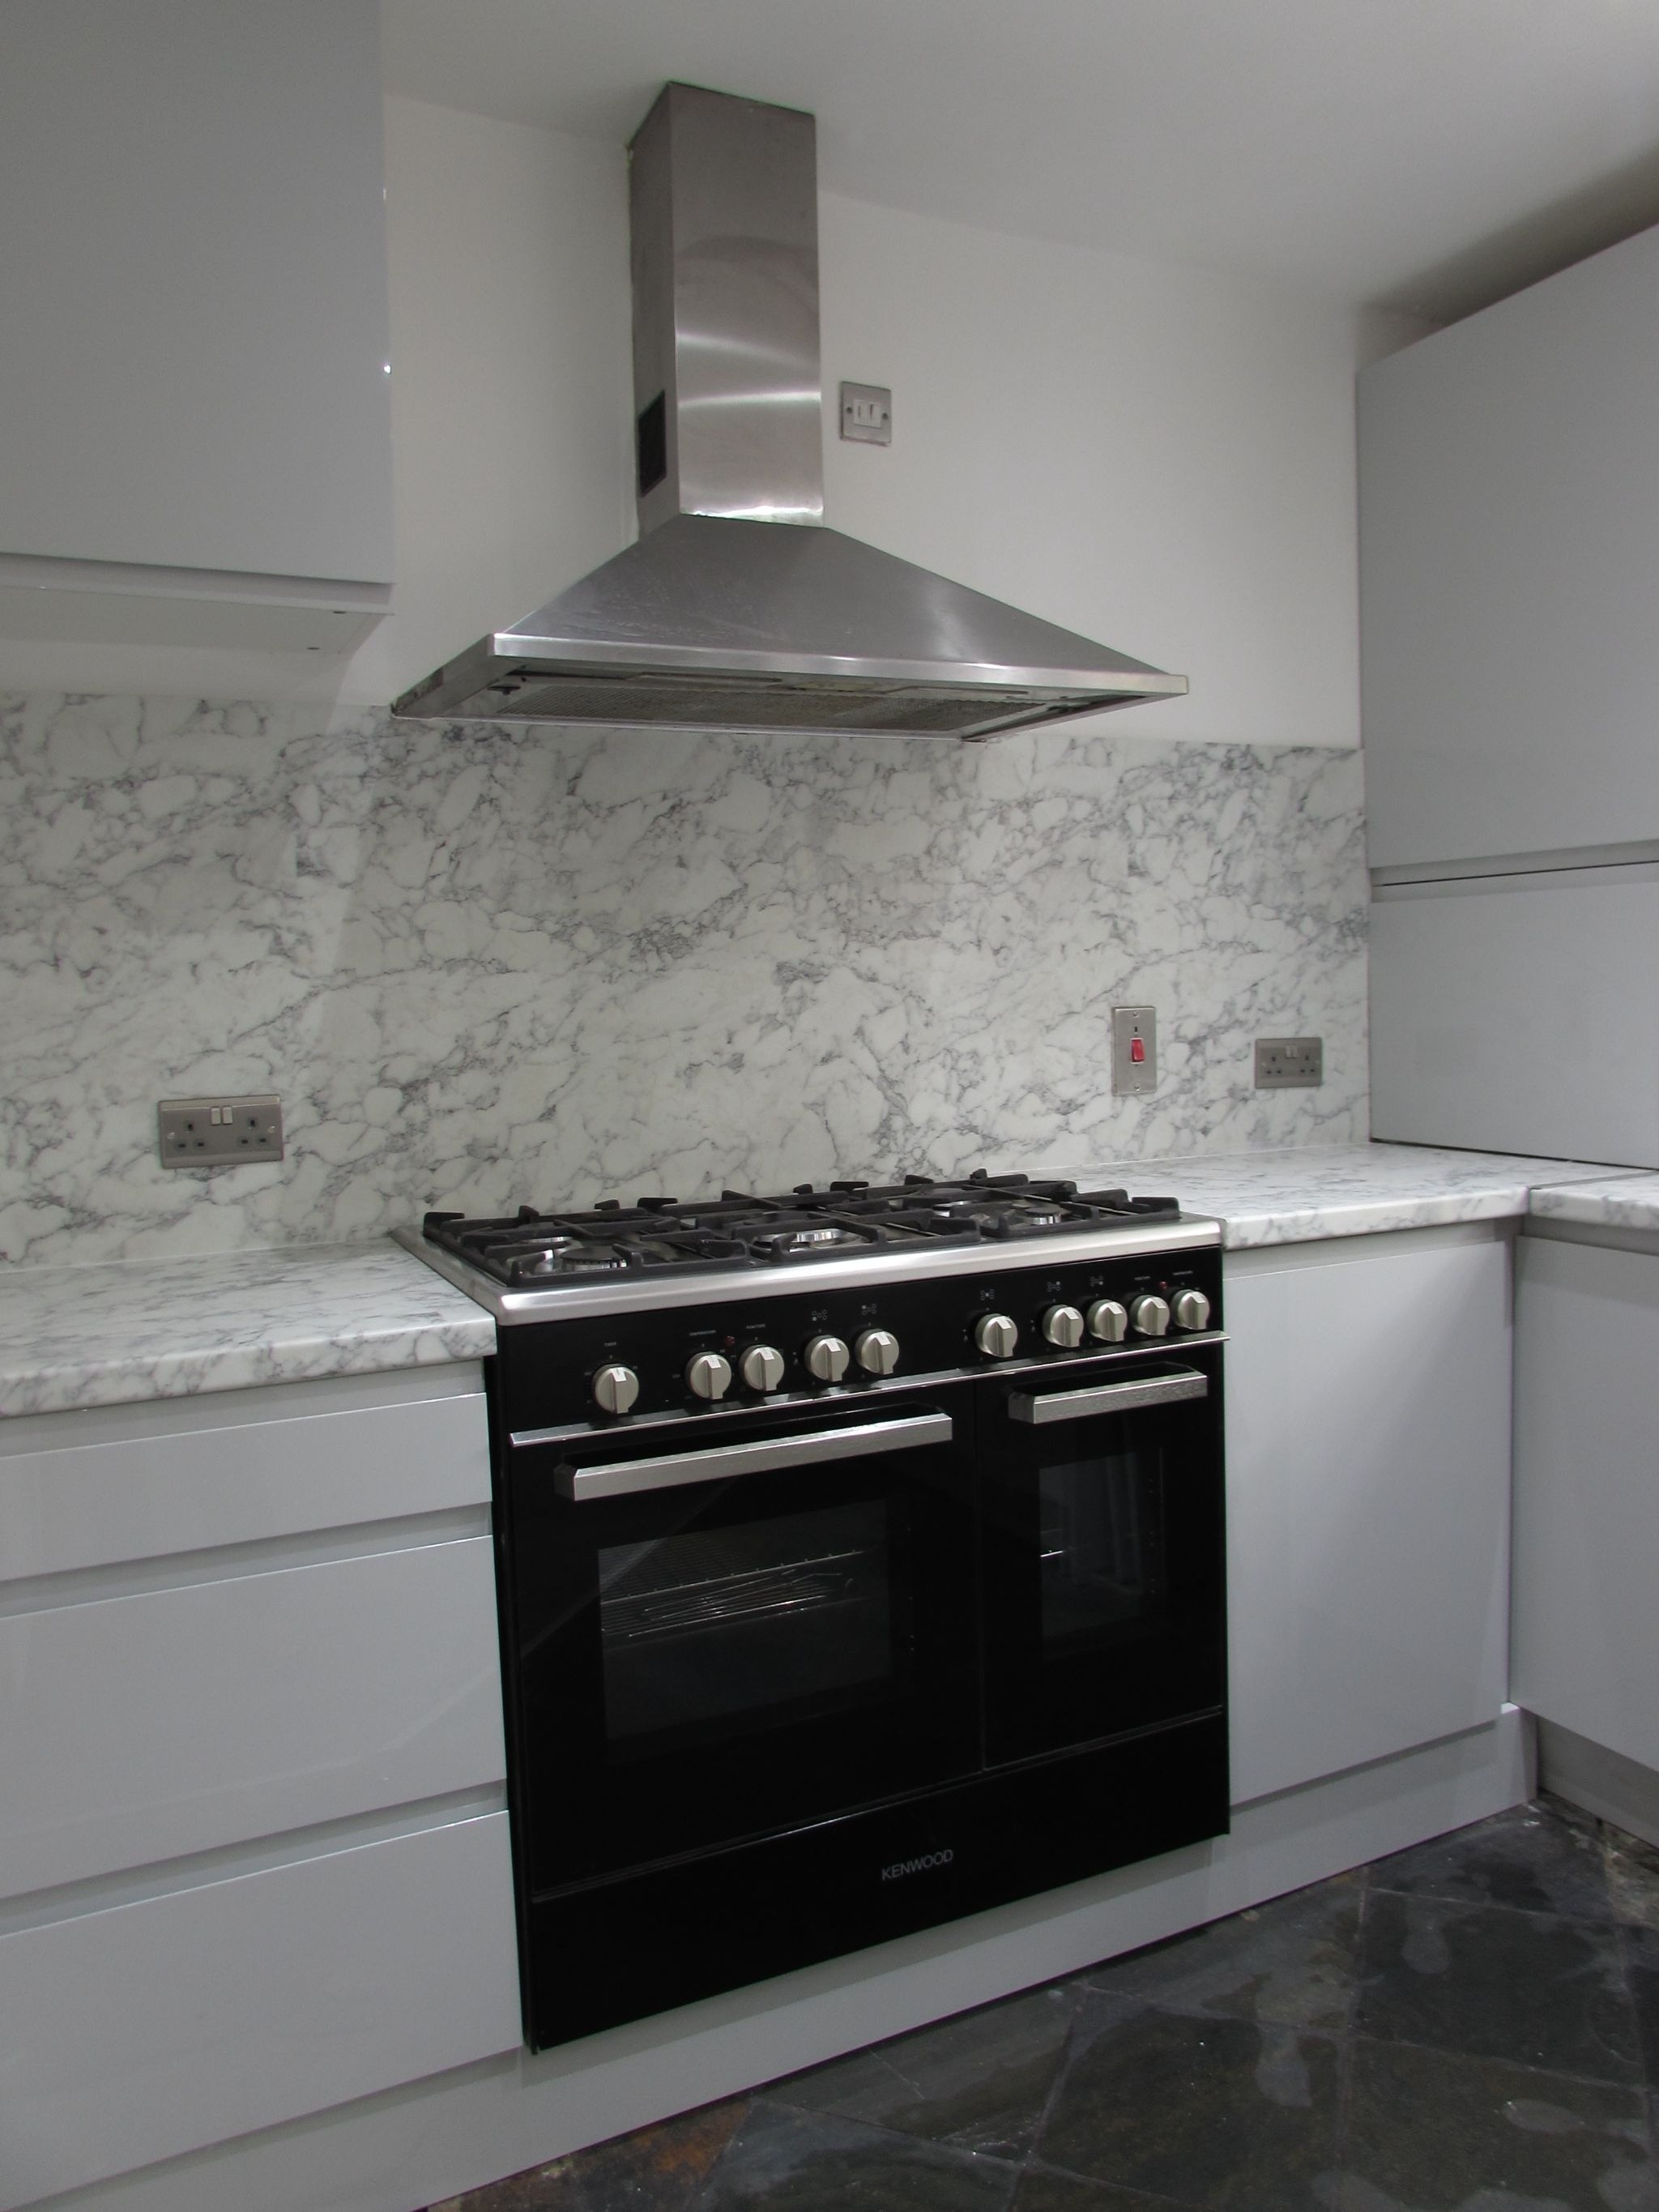 3 Bedroom Mid Terraced House For Sale - HOB AND OVEN